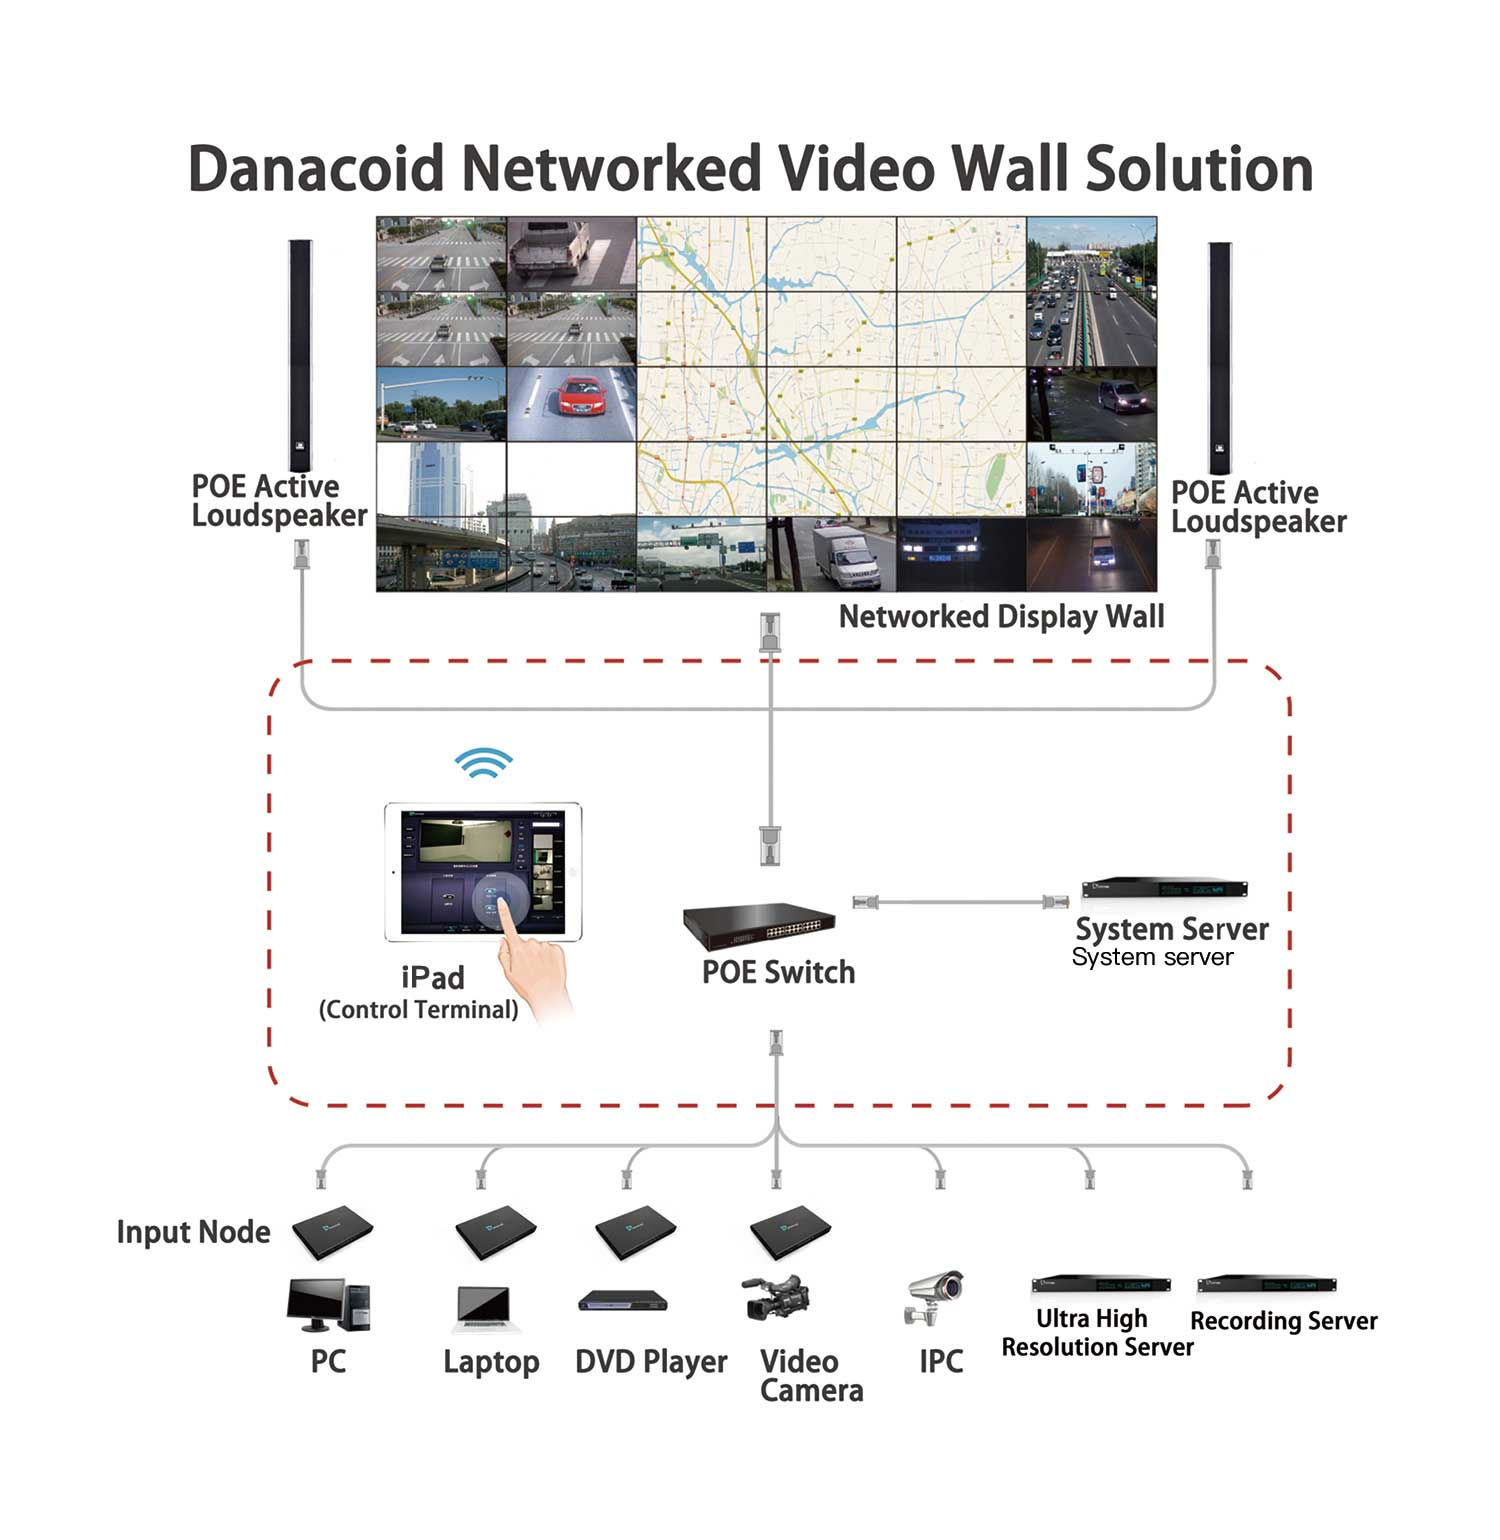 Danacoid Networked Video Wall Solution